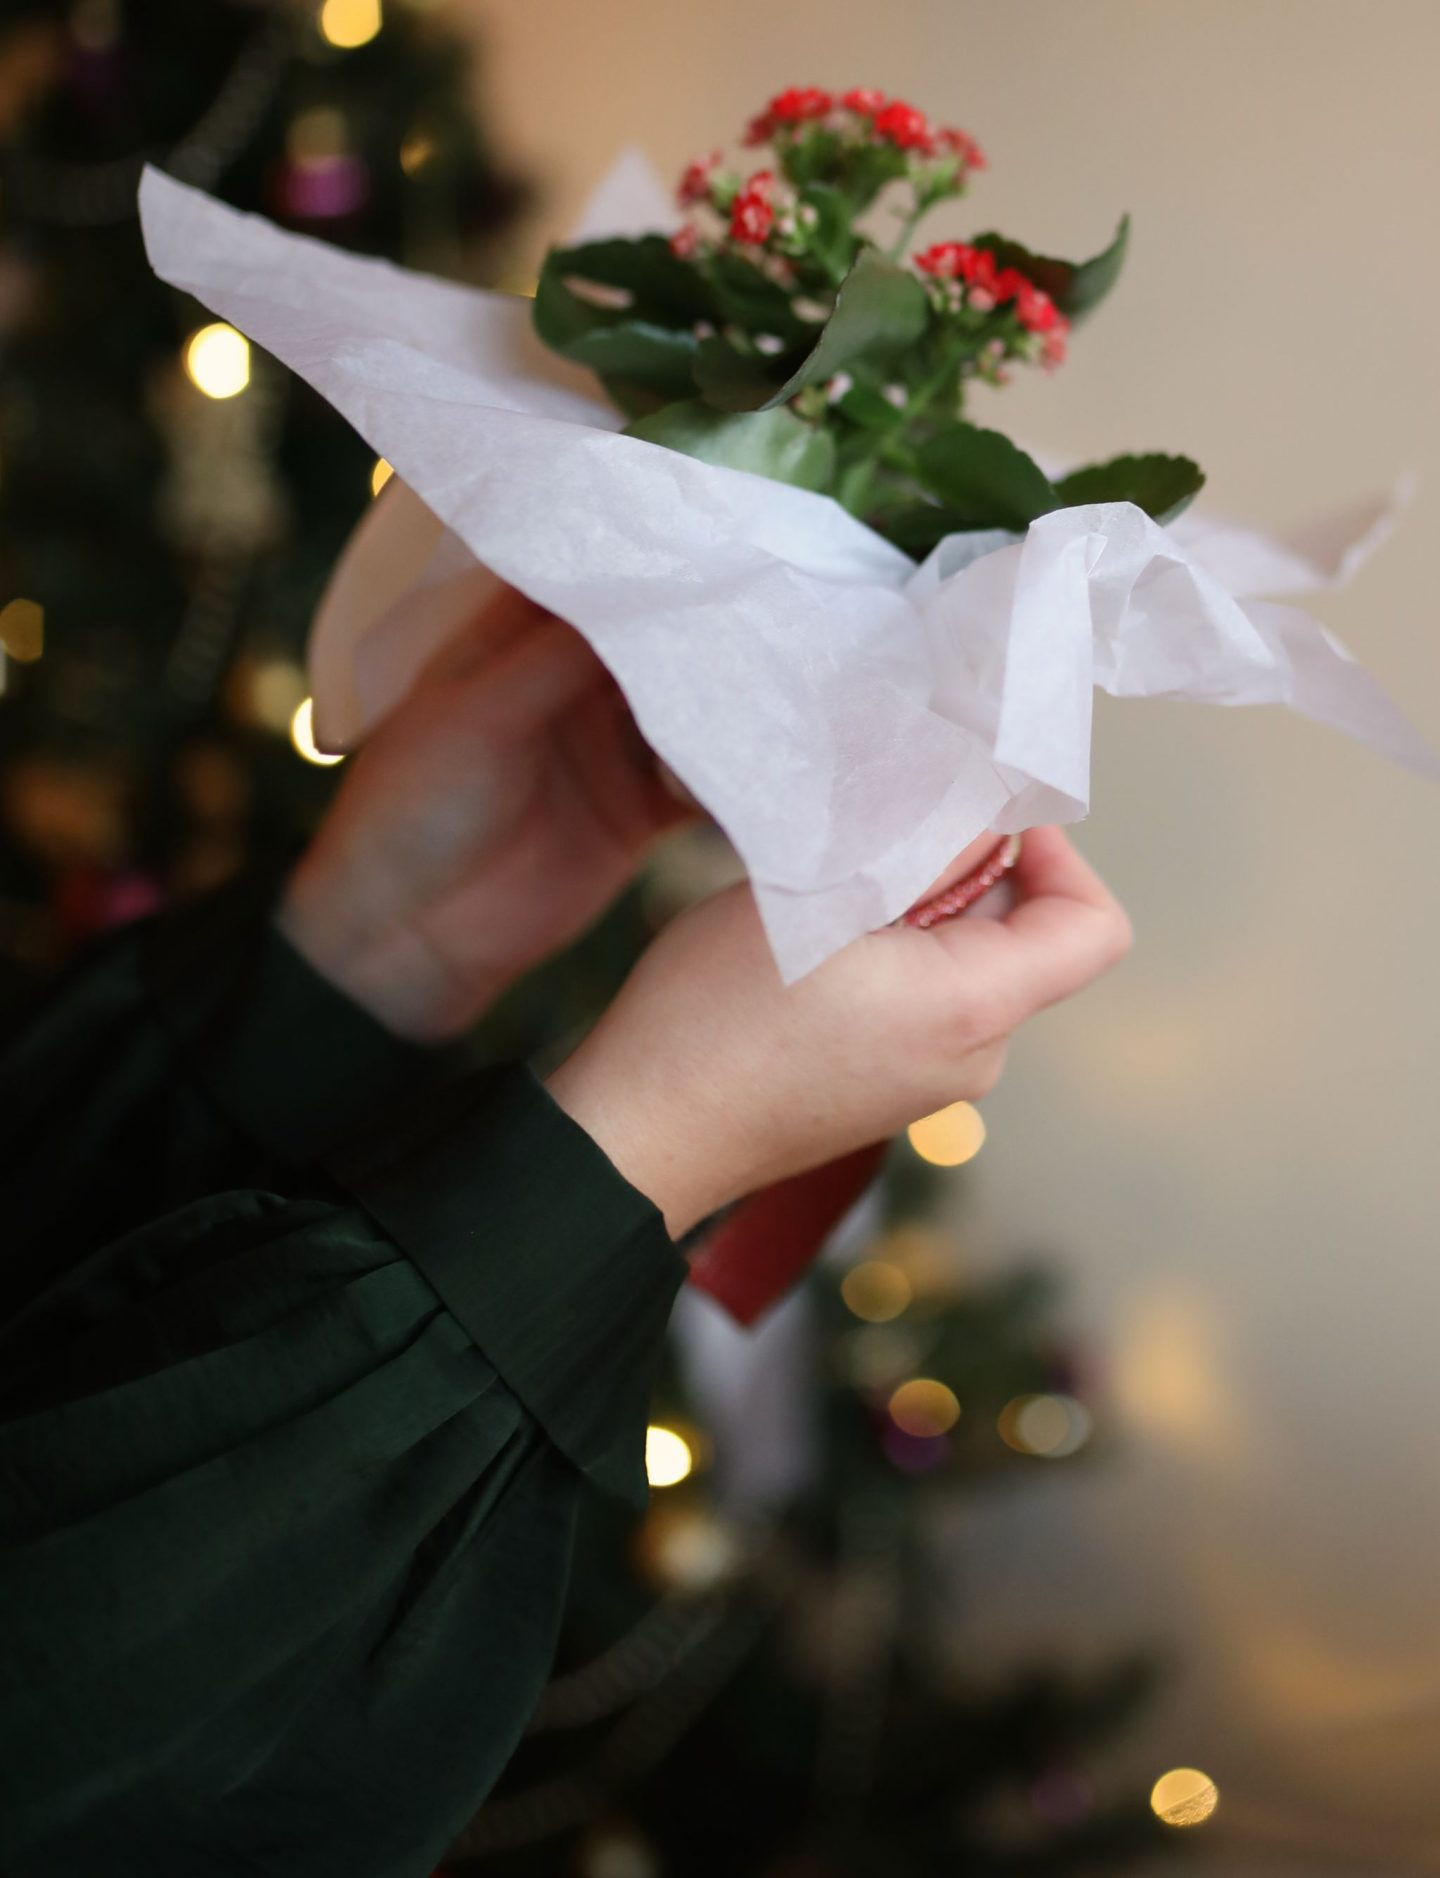 An easy DIY Festive Host Gift for Christmas using Kalanchoes - Katie Kalanchoe